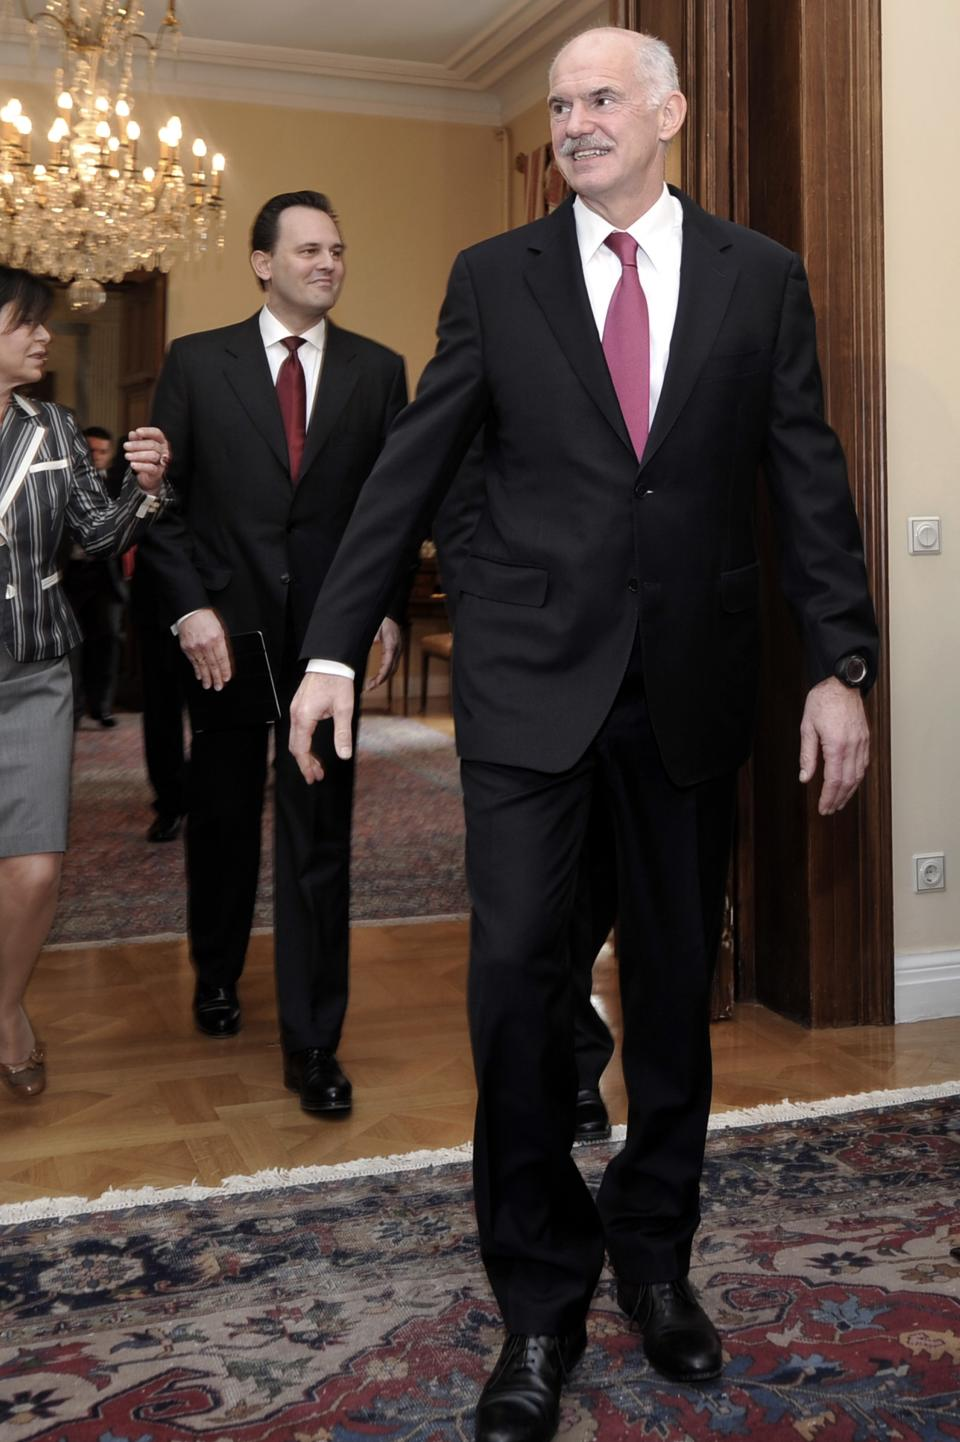 Greek Prime Minister George Papandreou, right, followed by the Foreign Minister Dimitris Droutsa arrive at the Presidential Palace  in Athens on Friday May 27, 2011.Greek political leaders held crisis meeting to find consensus on austerity measures. (AP Photo/Aris Messinis,pool)